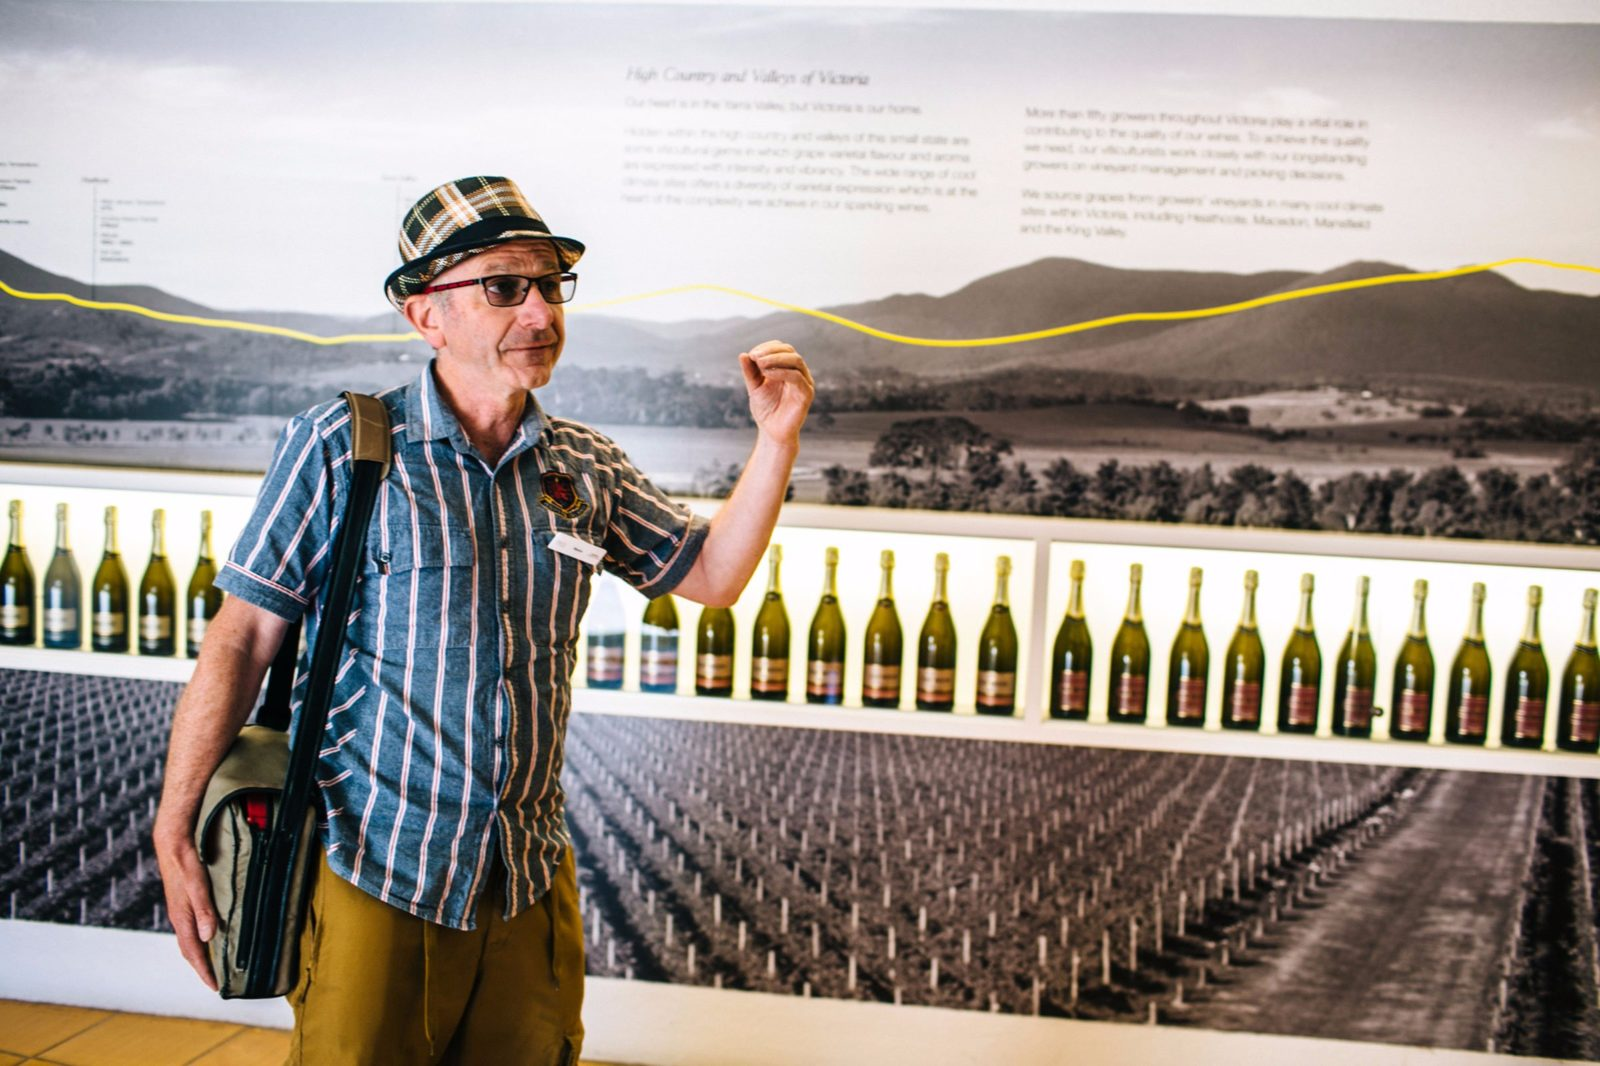 Yarra Valley winery tour with Chillout Travel